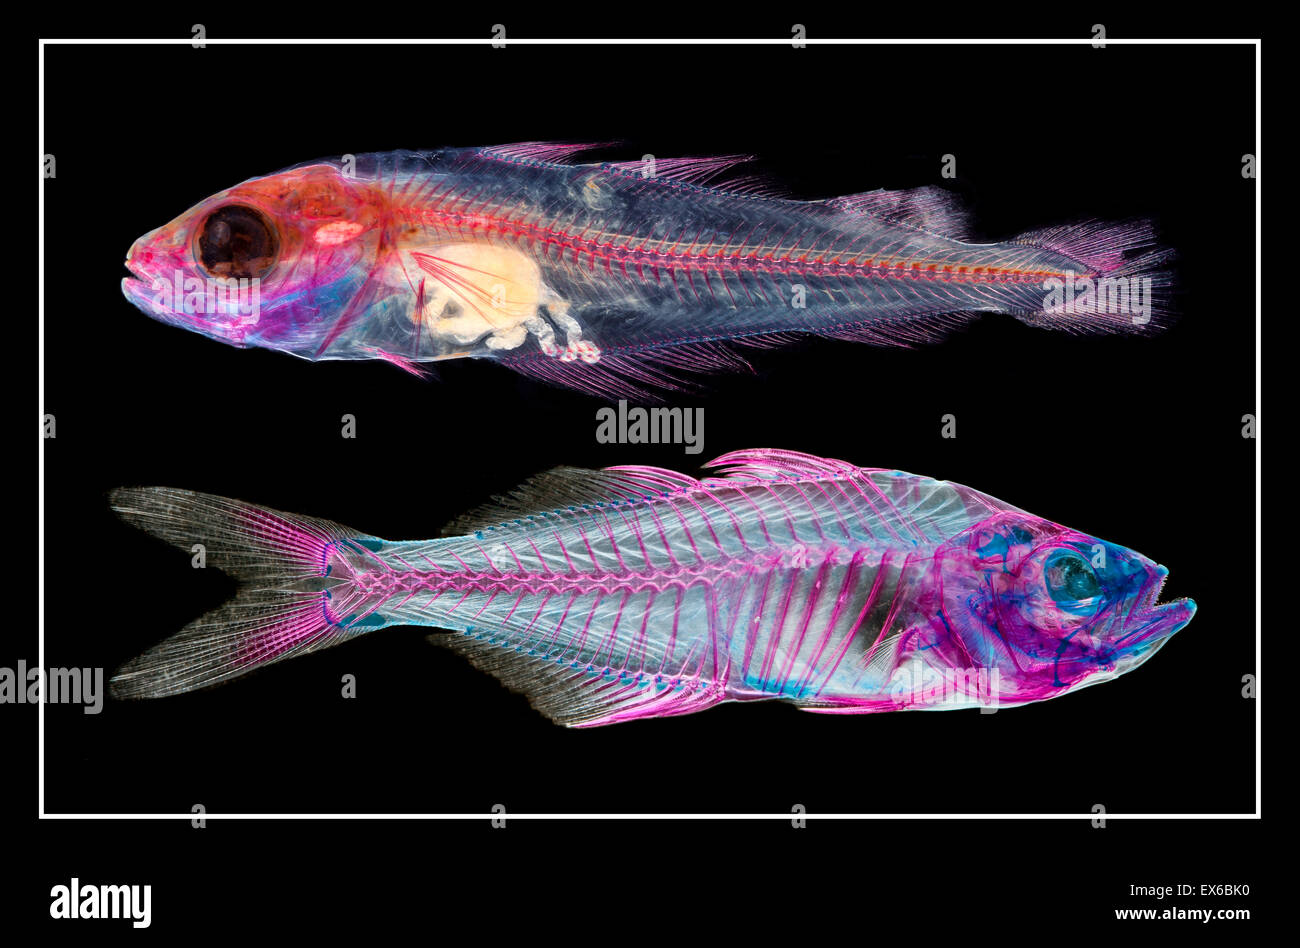 Upper: Pollachius pollachius, Juvenile pollack and lower: Chanda nama, Indian glass perch - Stock Image